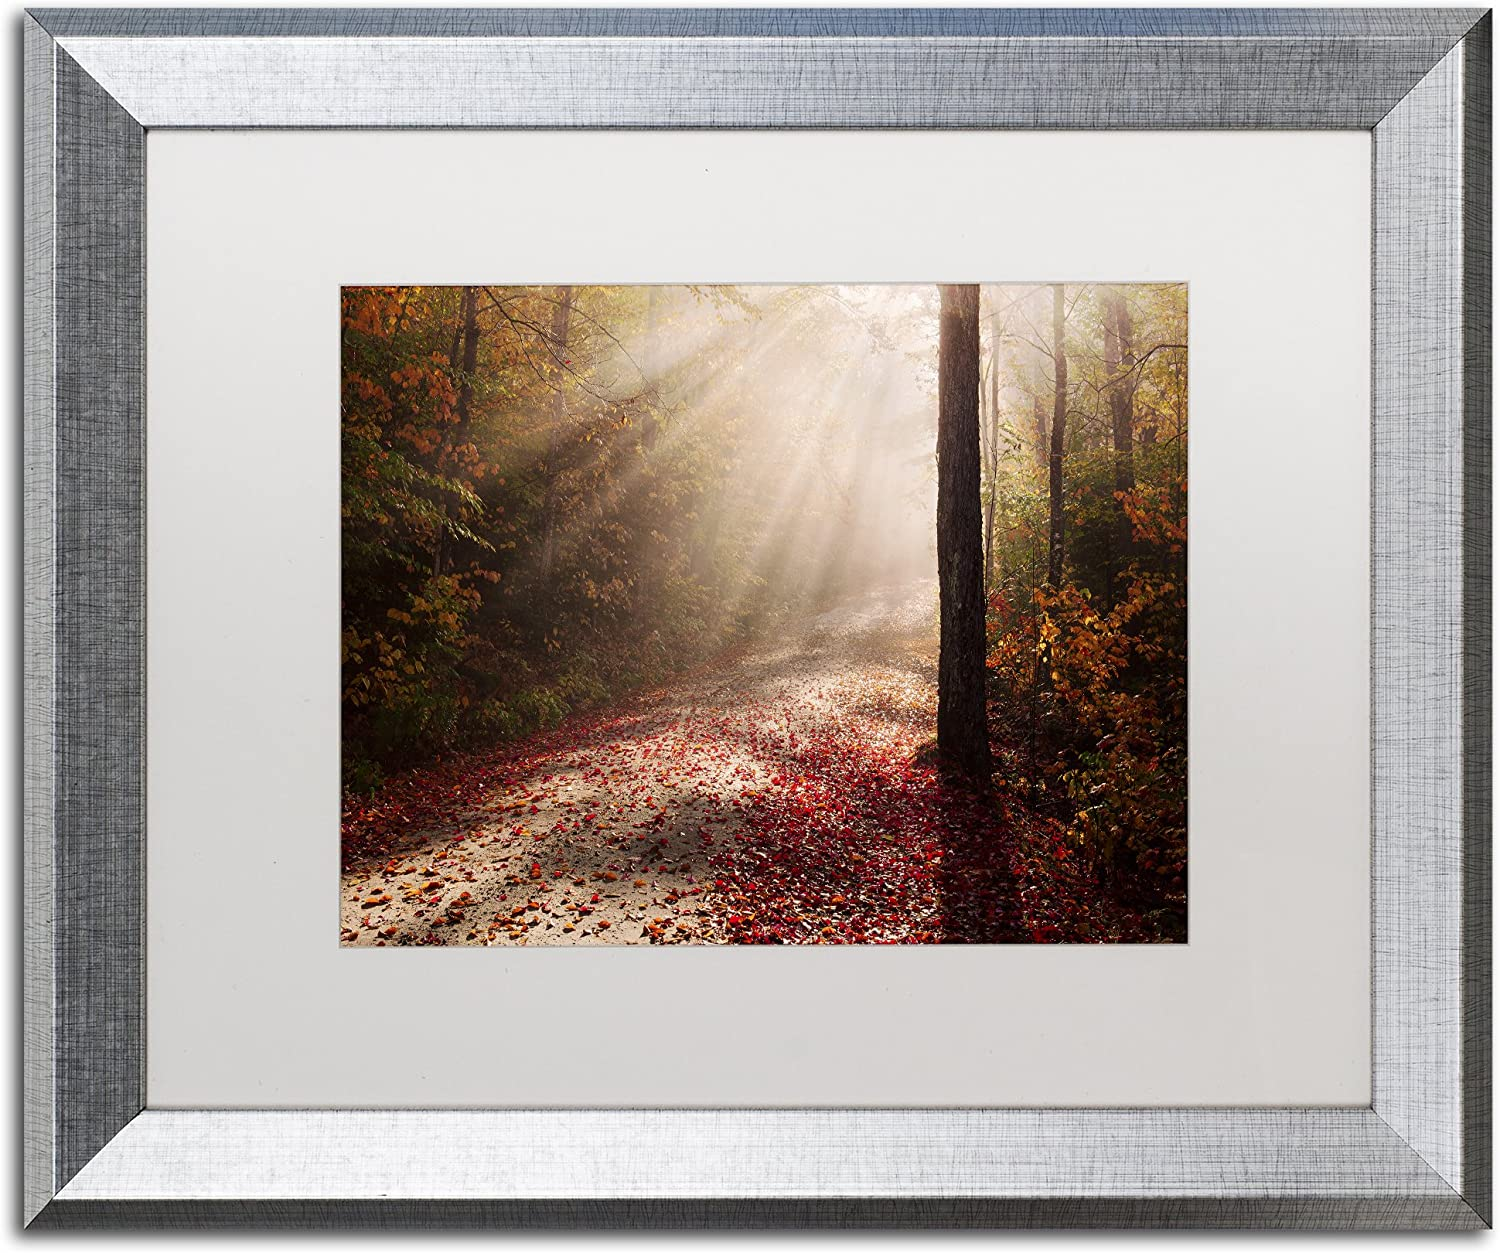 Amazon Com Light In The Forest By Michael Blanchette Photography White Matte Silver Framed Artwork 16 X 20 Home Kitchen